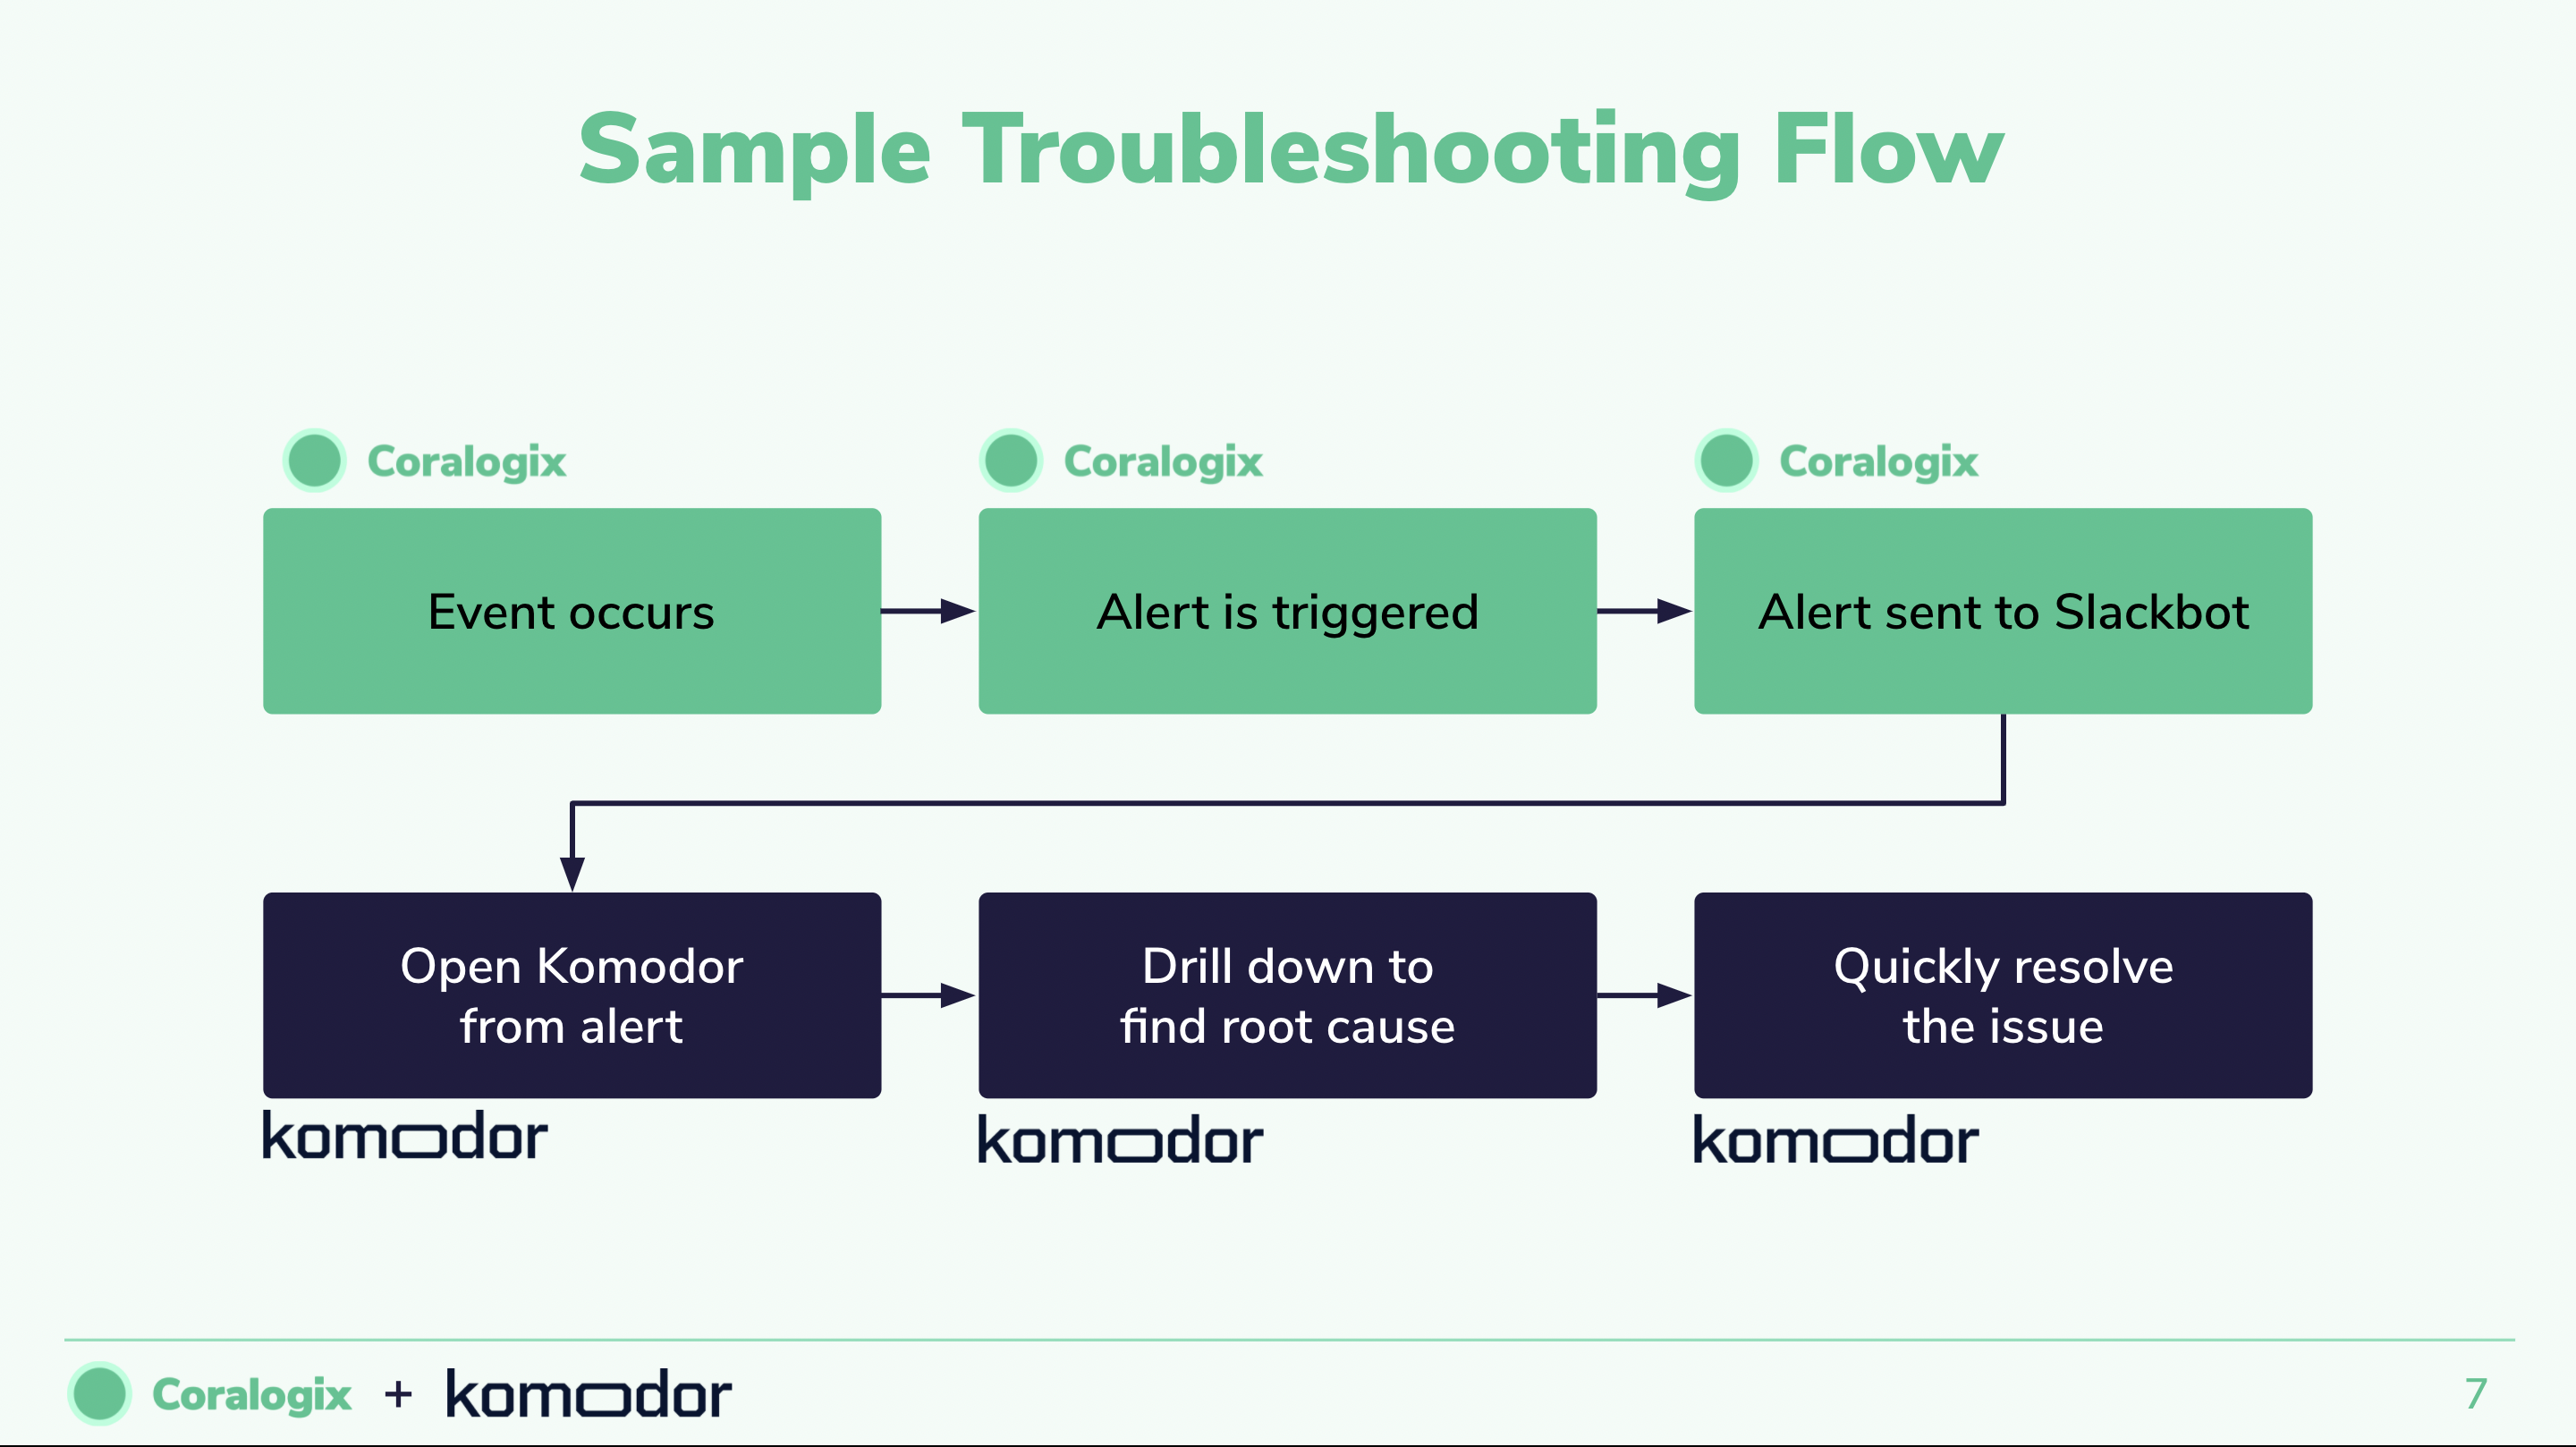 Troubleshooting in Fast-Paced Environments